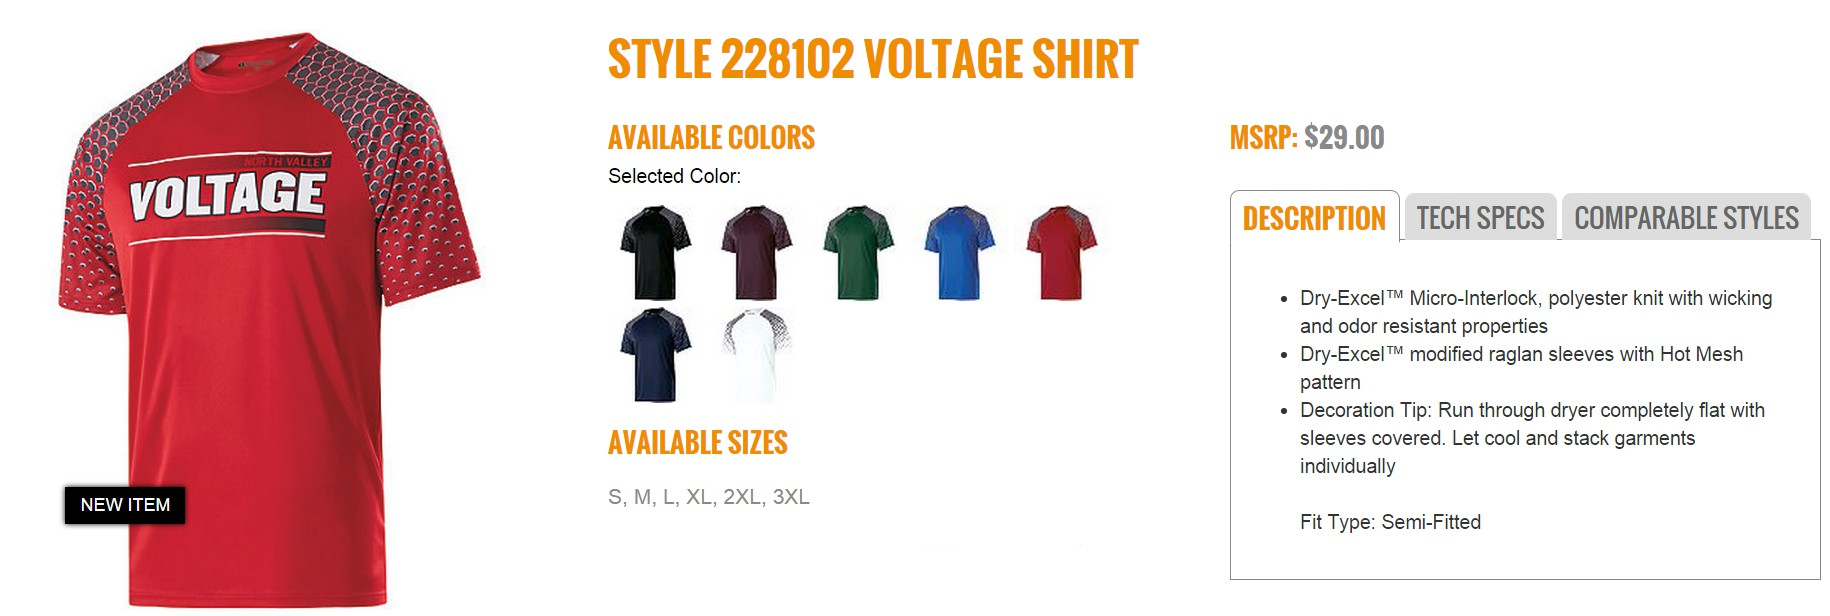 Group Fundraising Store Apparel Fundraising Holloway  Voltage Shirt 228102